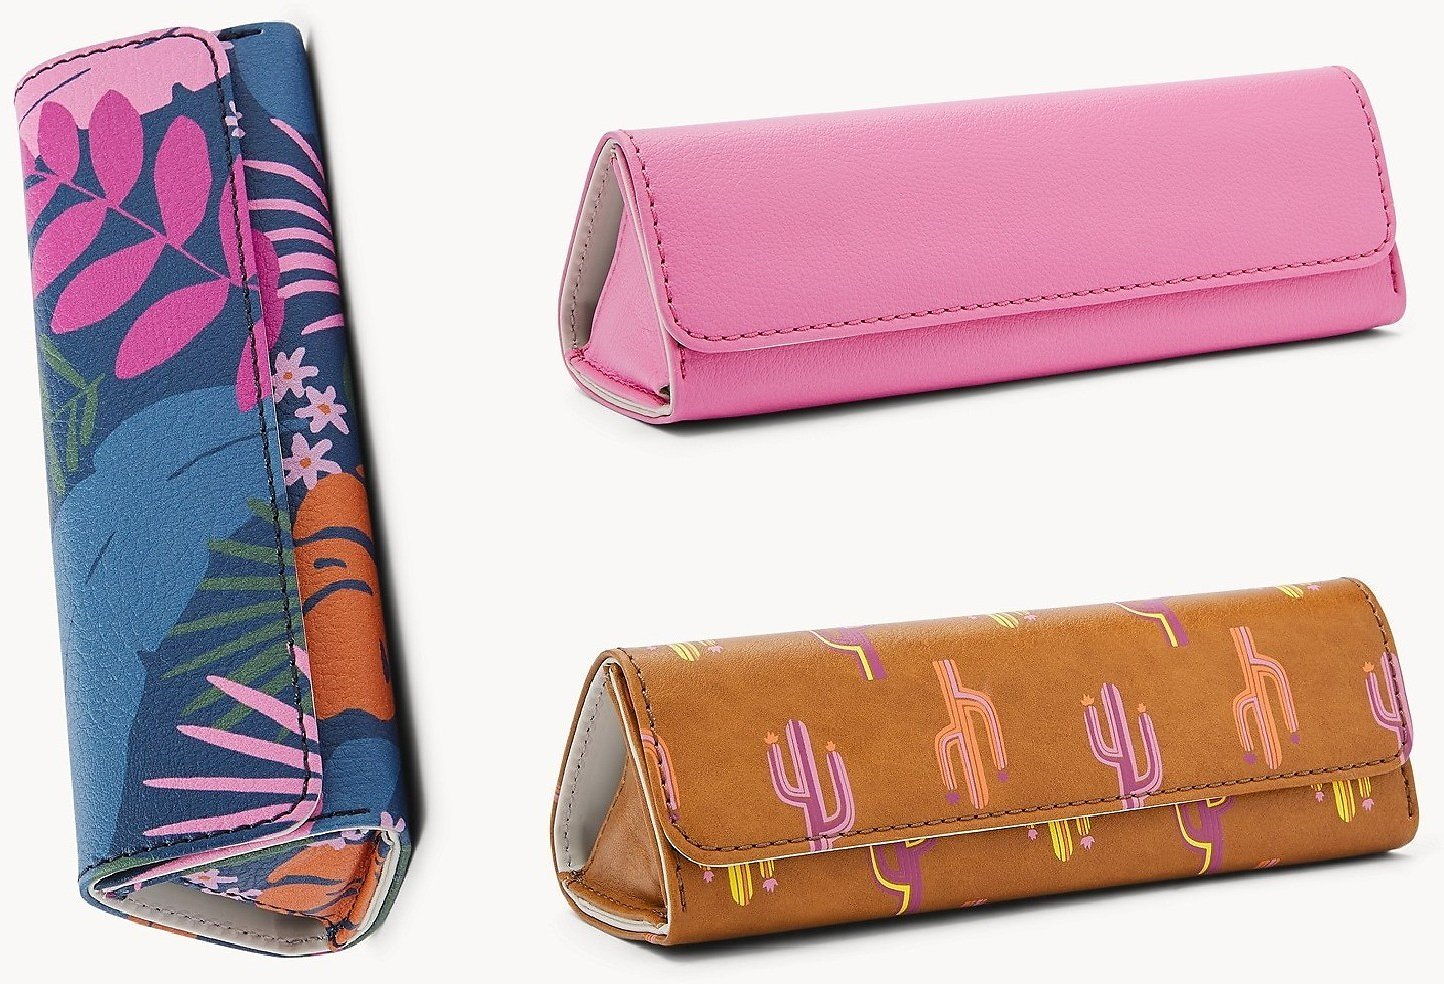 $7.20 or Less Fossil Sofia Sunglasses Case - 3 Styles